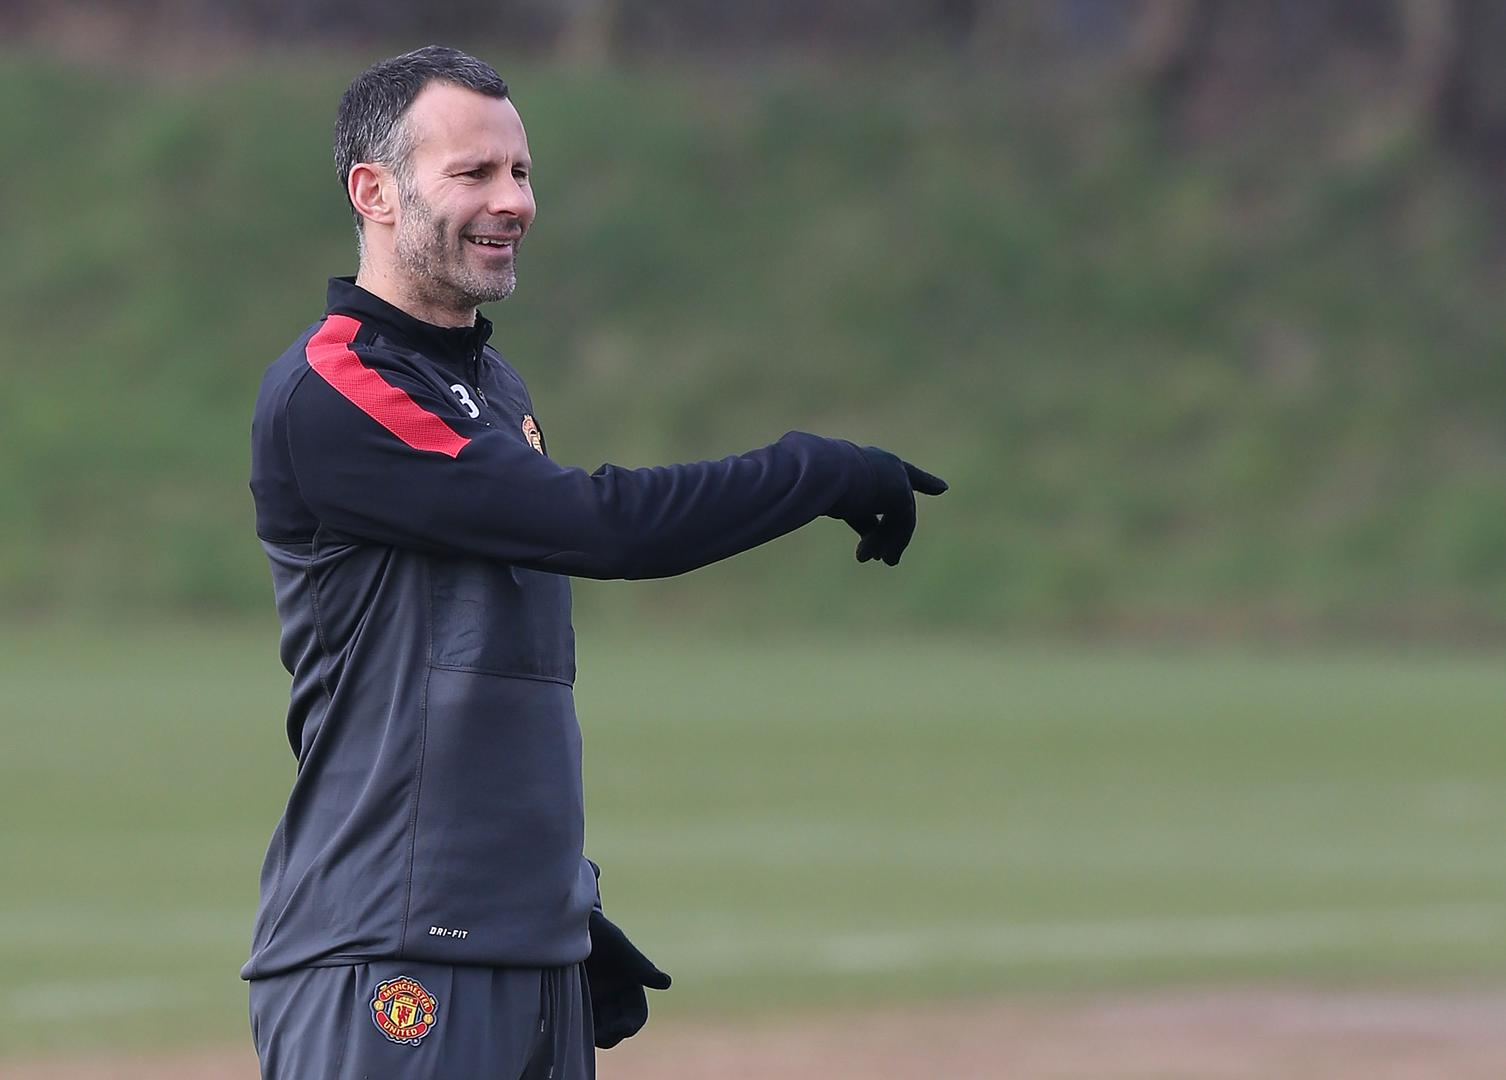 Ryan Giggs in training for Manchester United in 2013.,